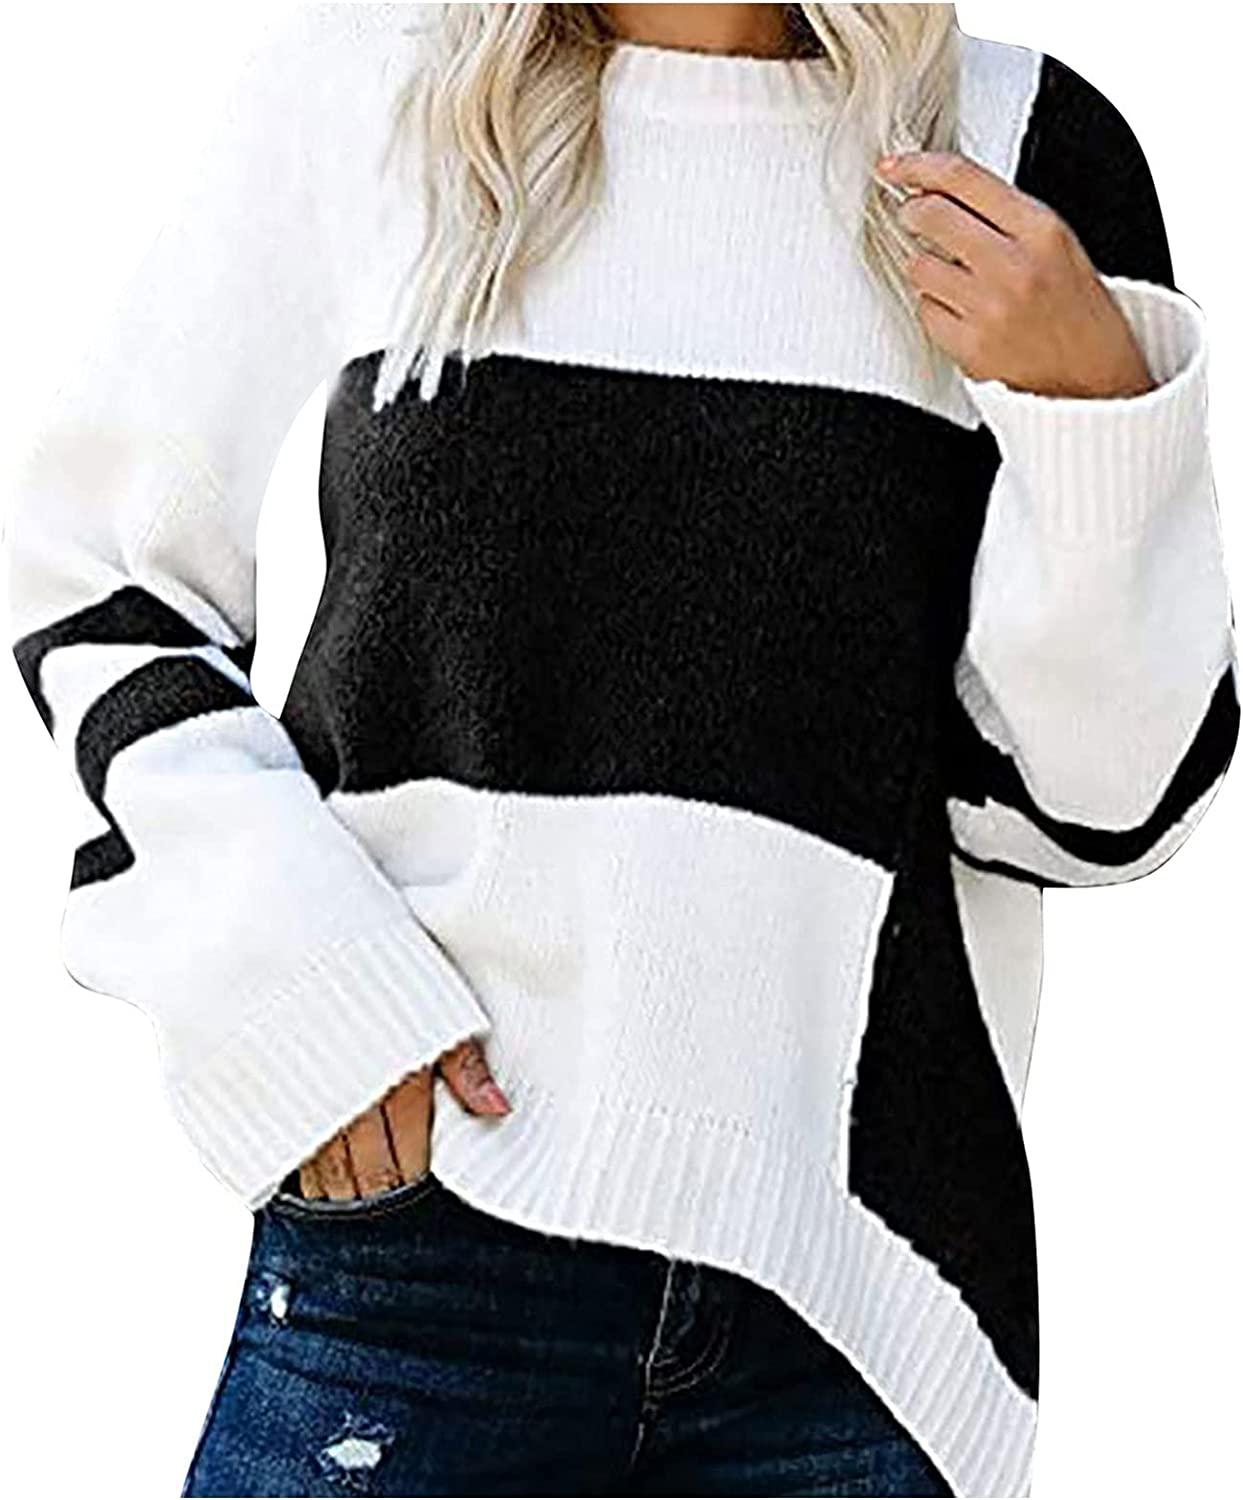 ODJOY-FAN Women's Round Neck Long Sleeve Sweater Loose Irregular Stripes Color Block Pullover Large Size Casual T-Shirt